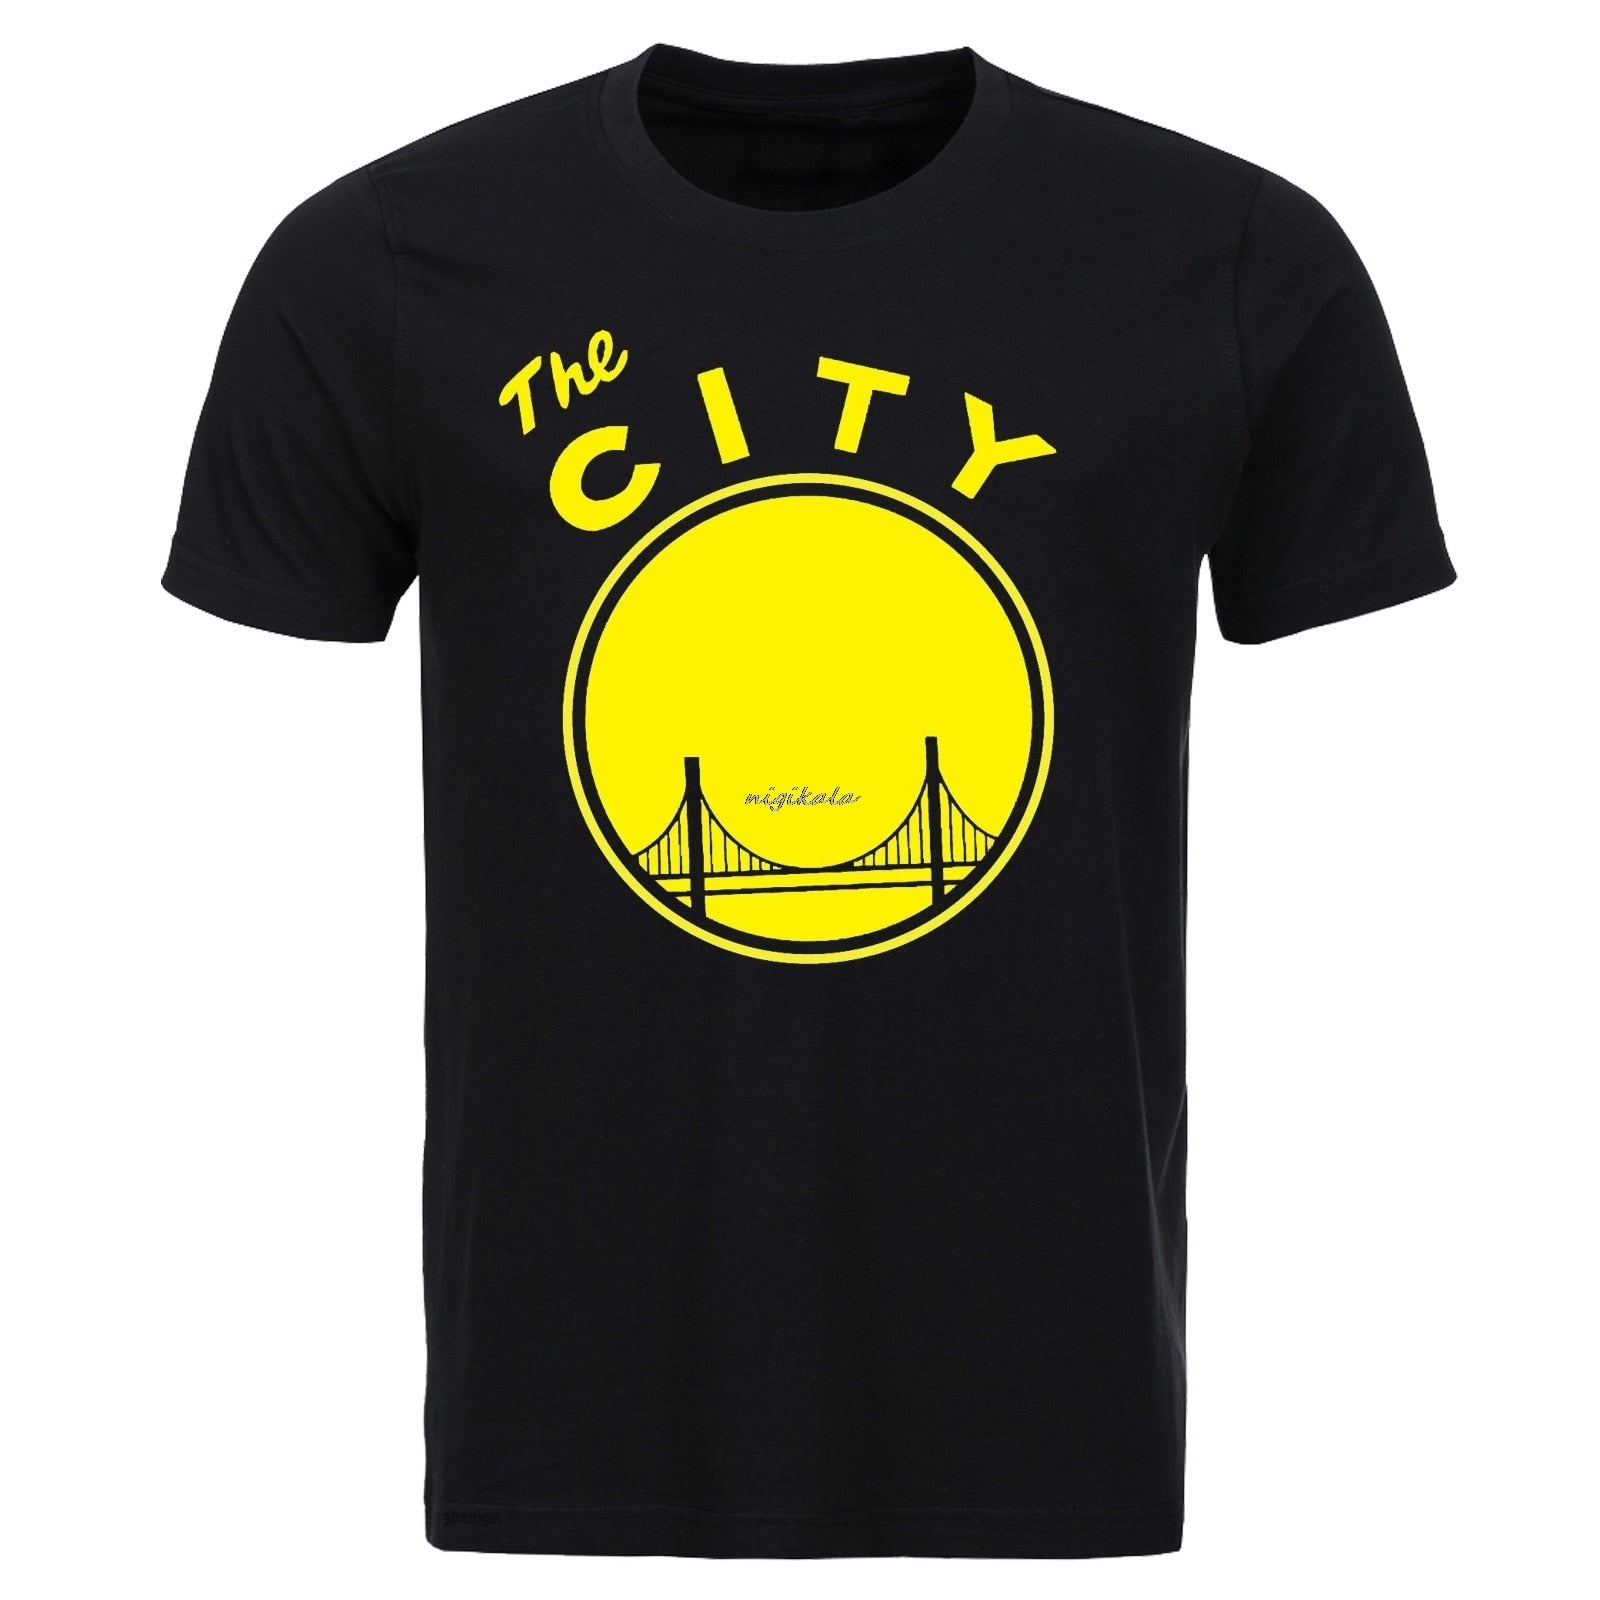 New The City Mens T Shirt Short Sleeve Cotton Tee Shirts Casual Tops,Golden State Warriors Steph Curry  Draymond